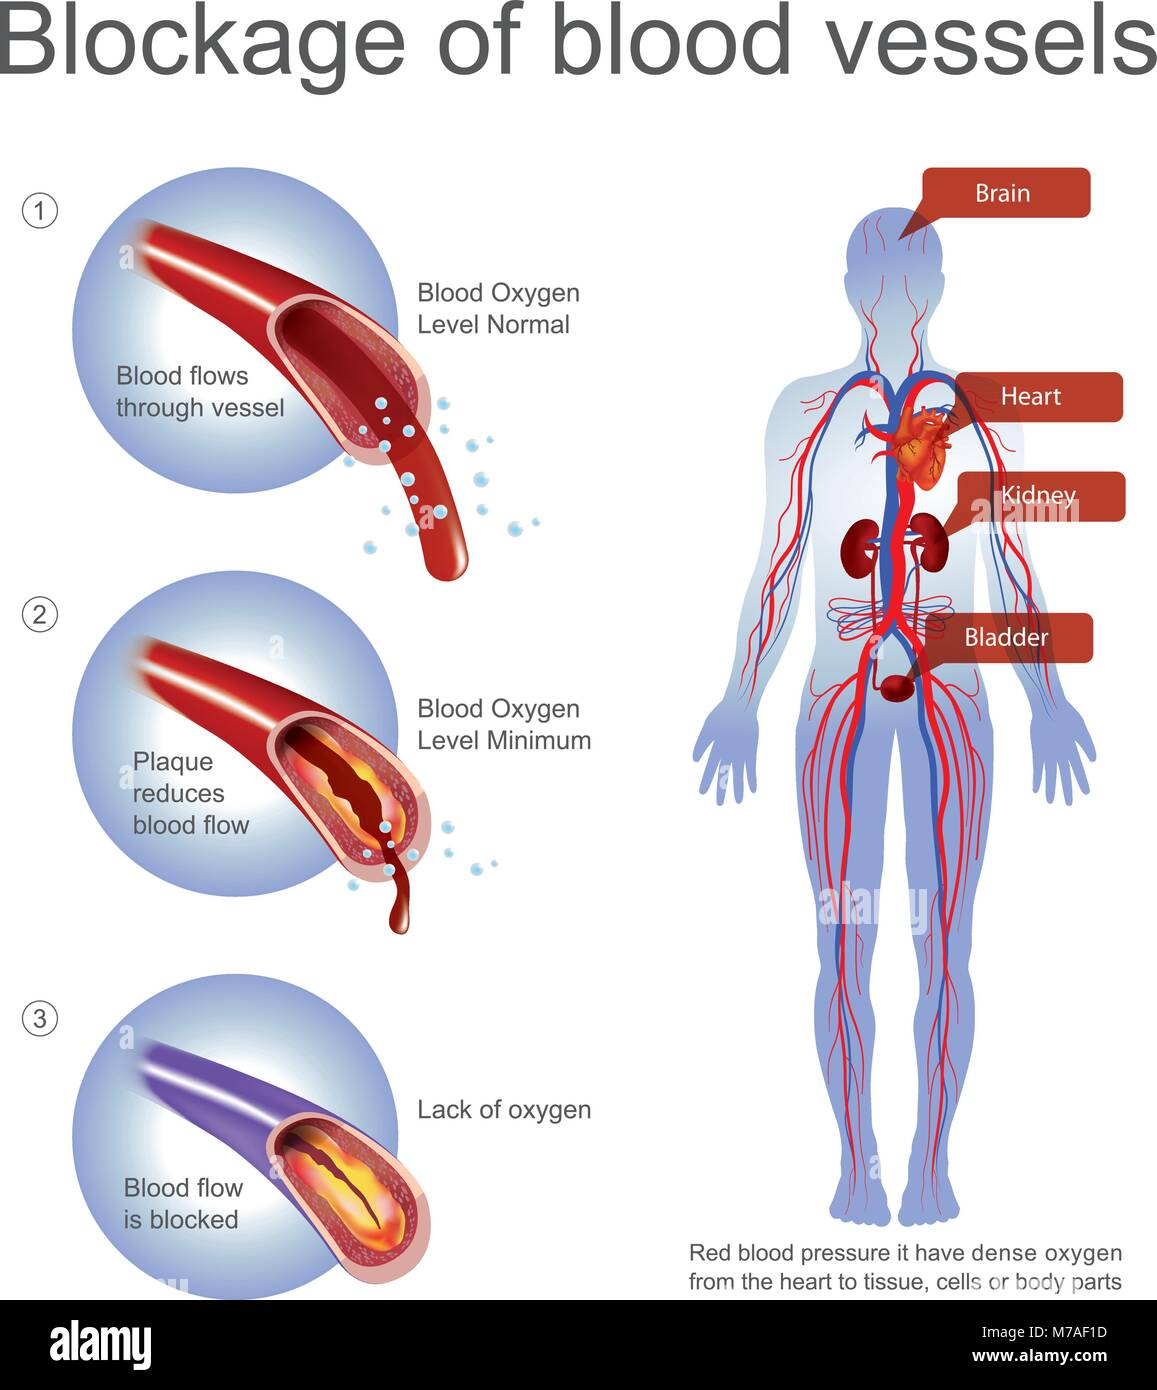 Red Blood Pressure It Have Dense Oxygen From The Heart To Tissue